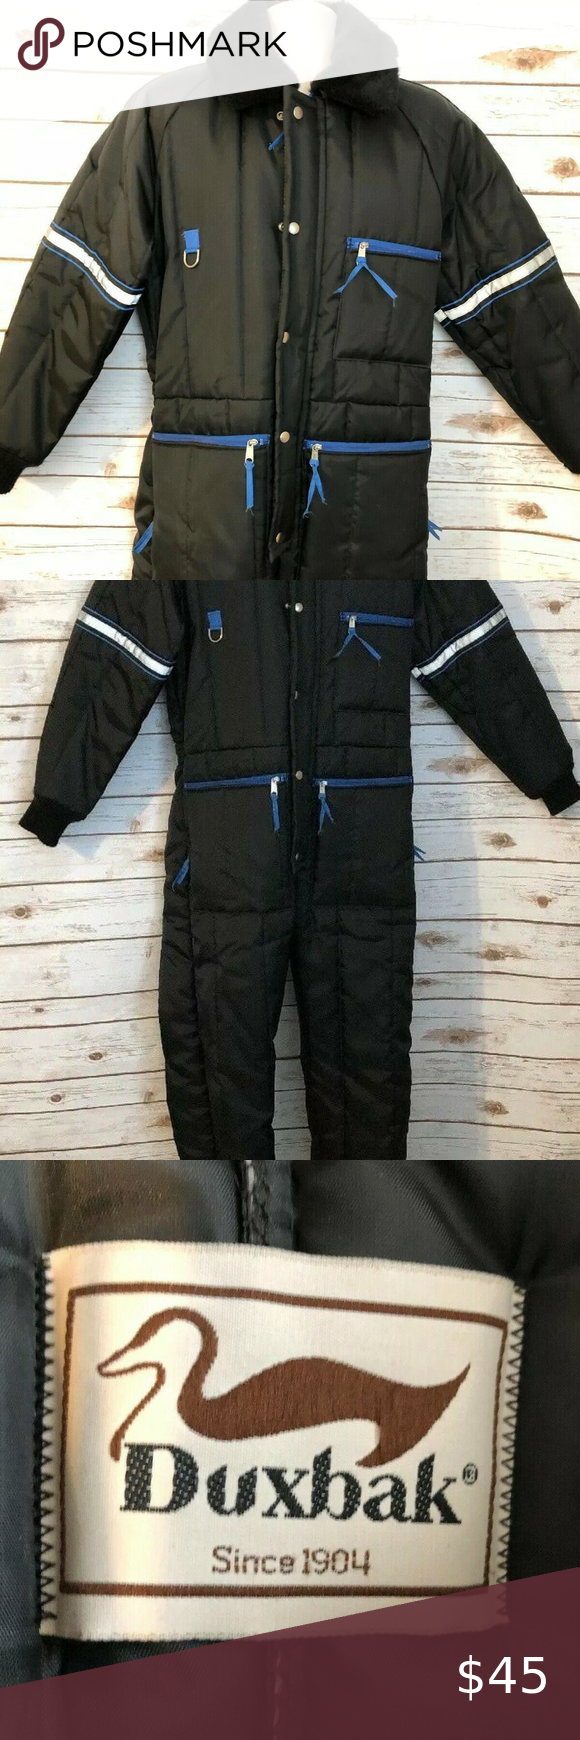 duxbak insulated coveralls style vintage snow suit in 2020 on insulated overalls id=98371